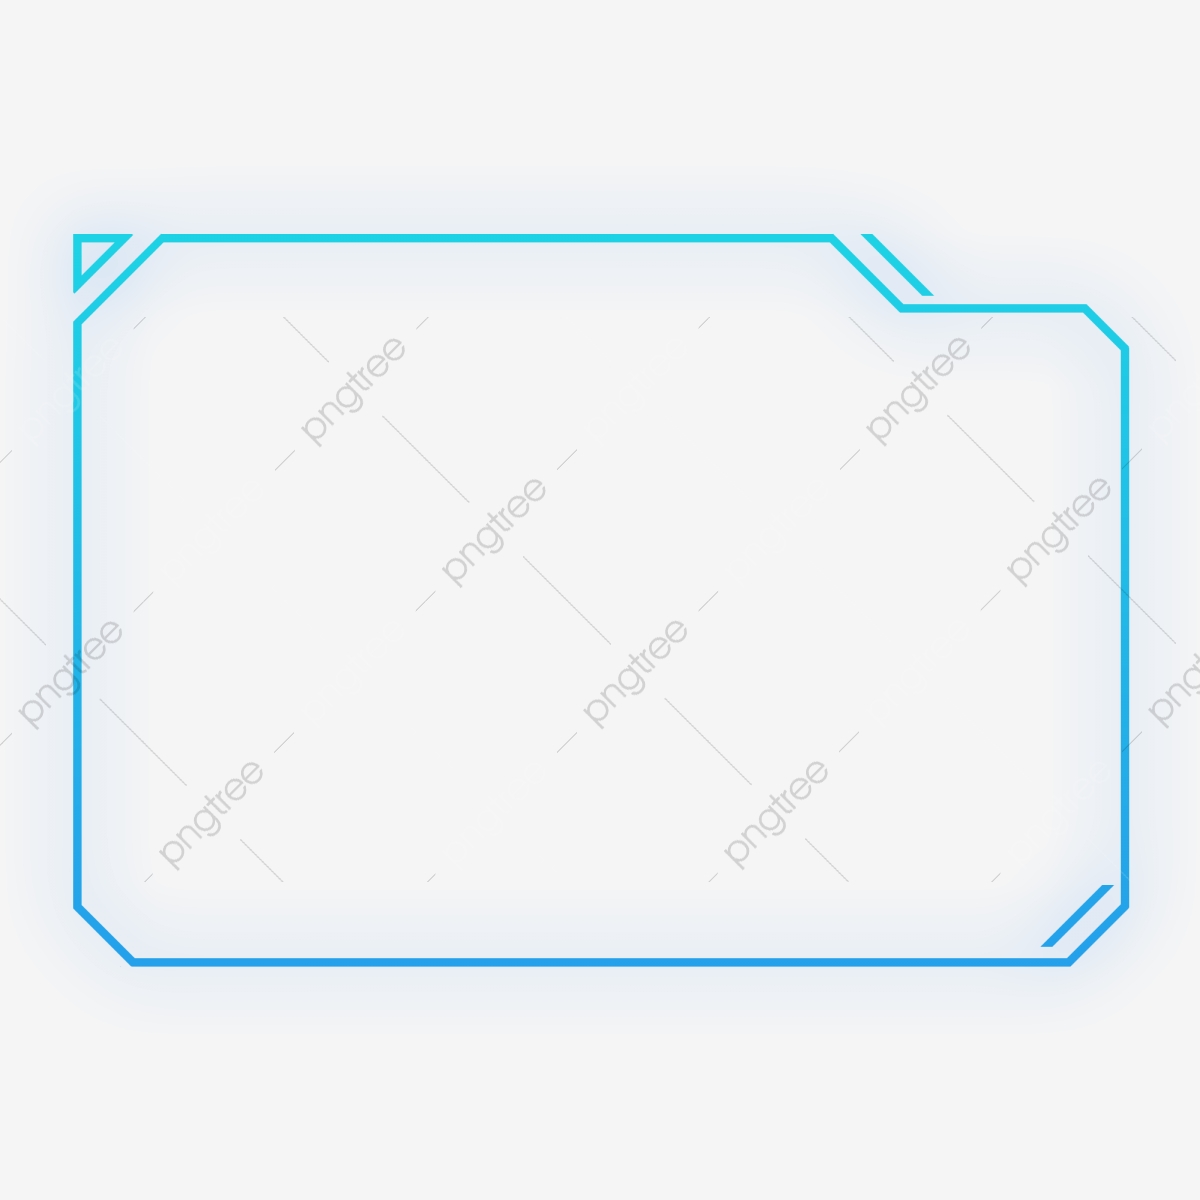 Png Free Buckle Blue-violet Gradient Color External Glow Geometric